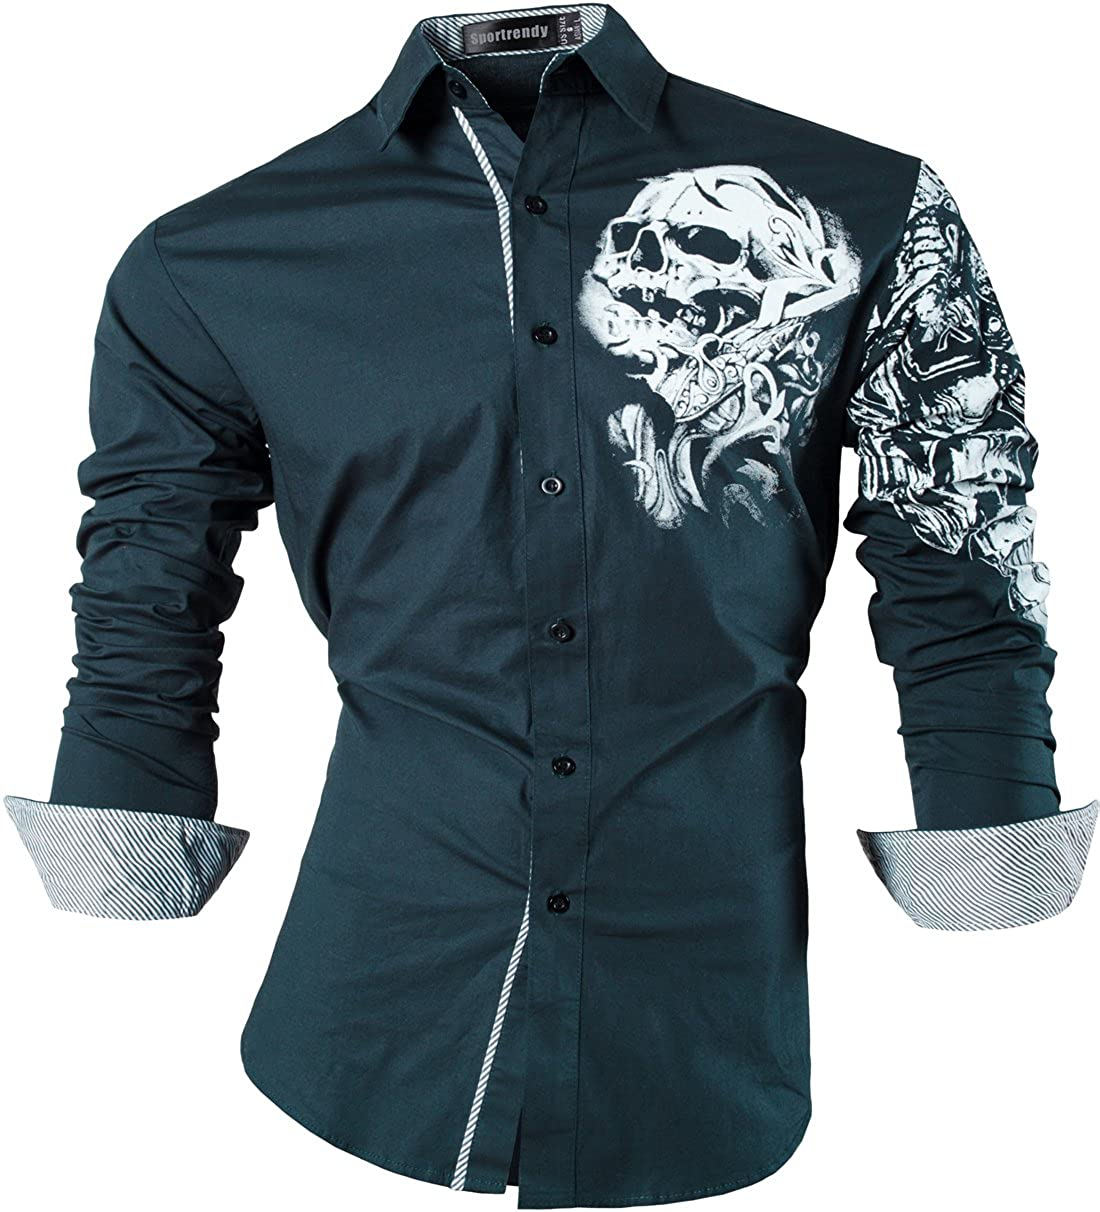 Sportrendy Men's Slim Fit Long Sleeve Casual Button Down Shirts Dragon Tattoo JZS041